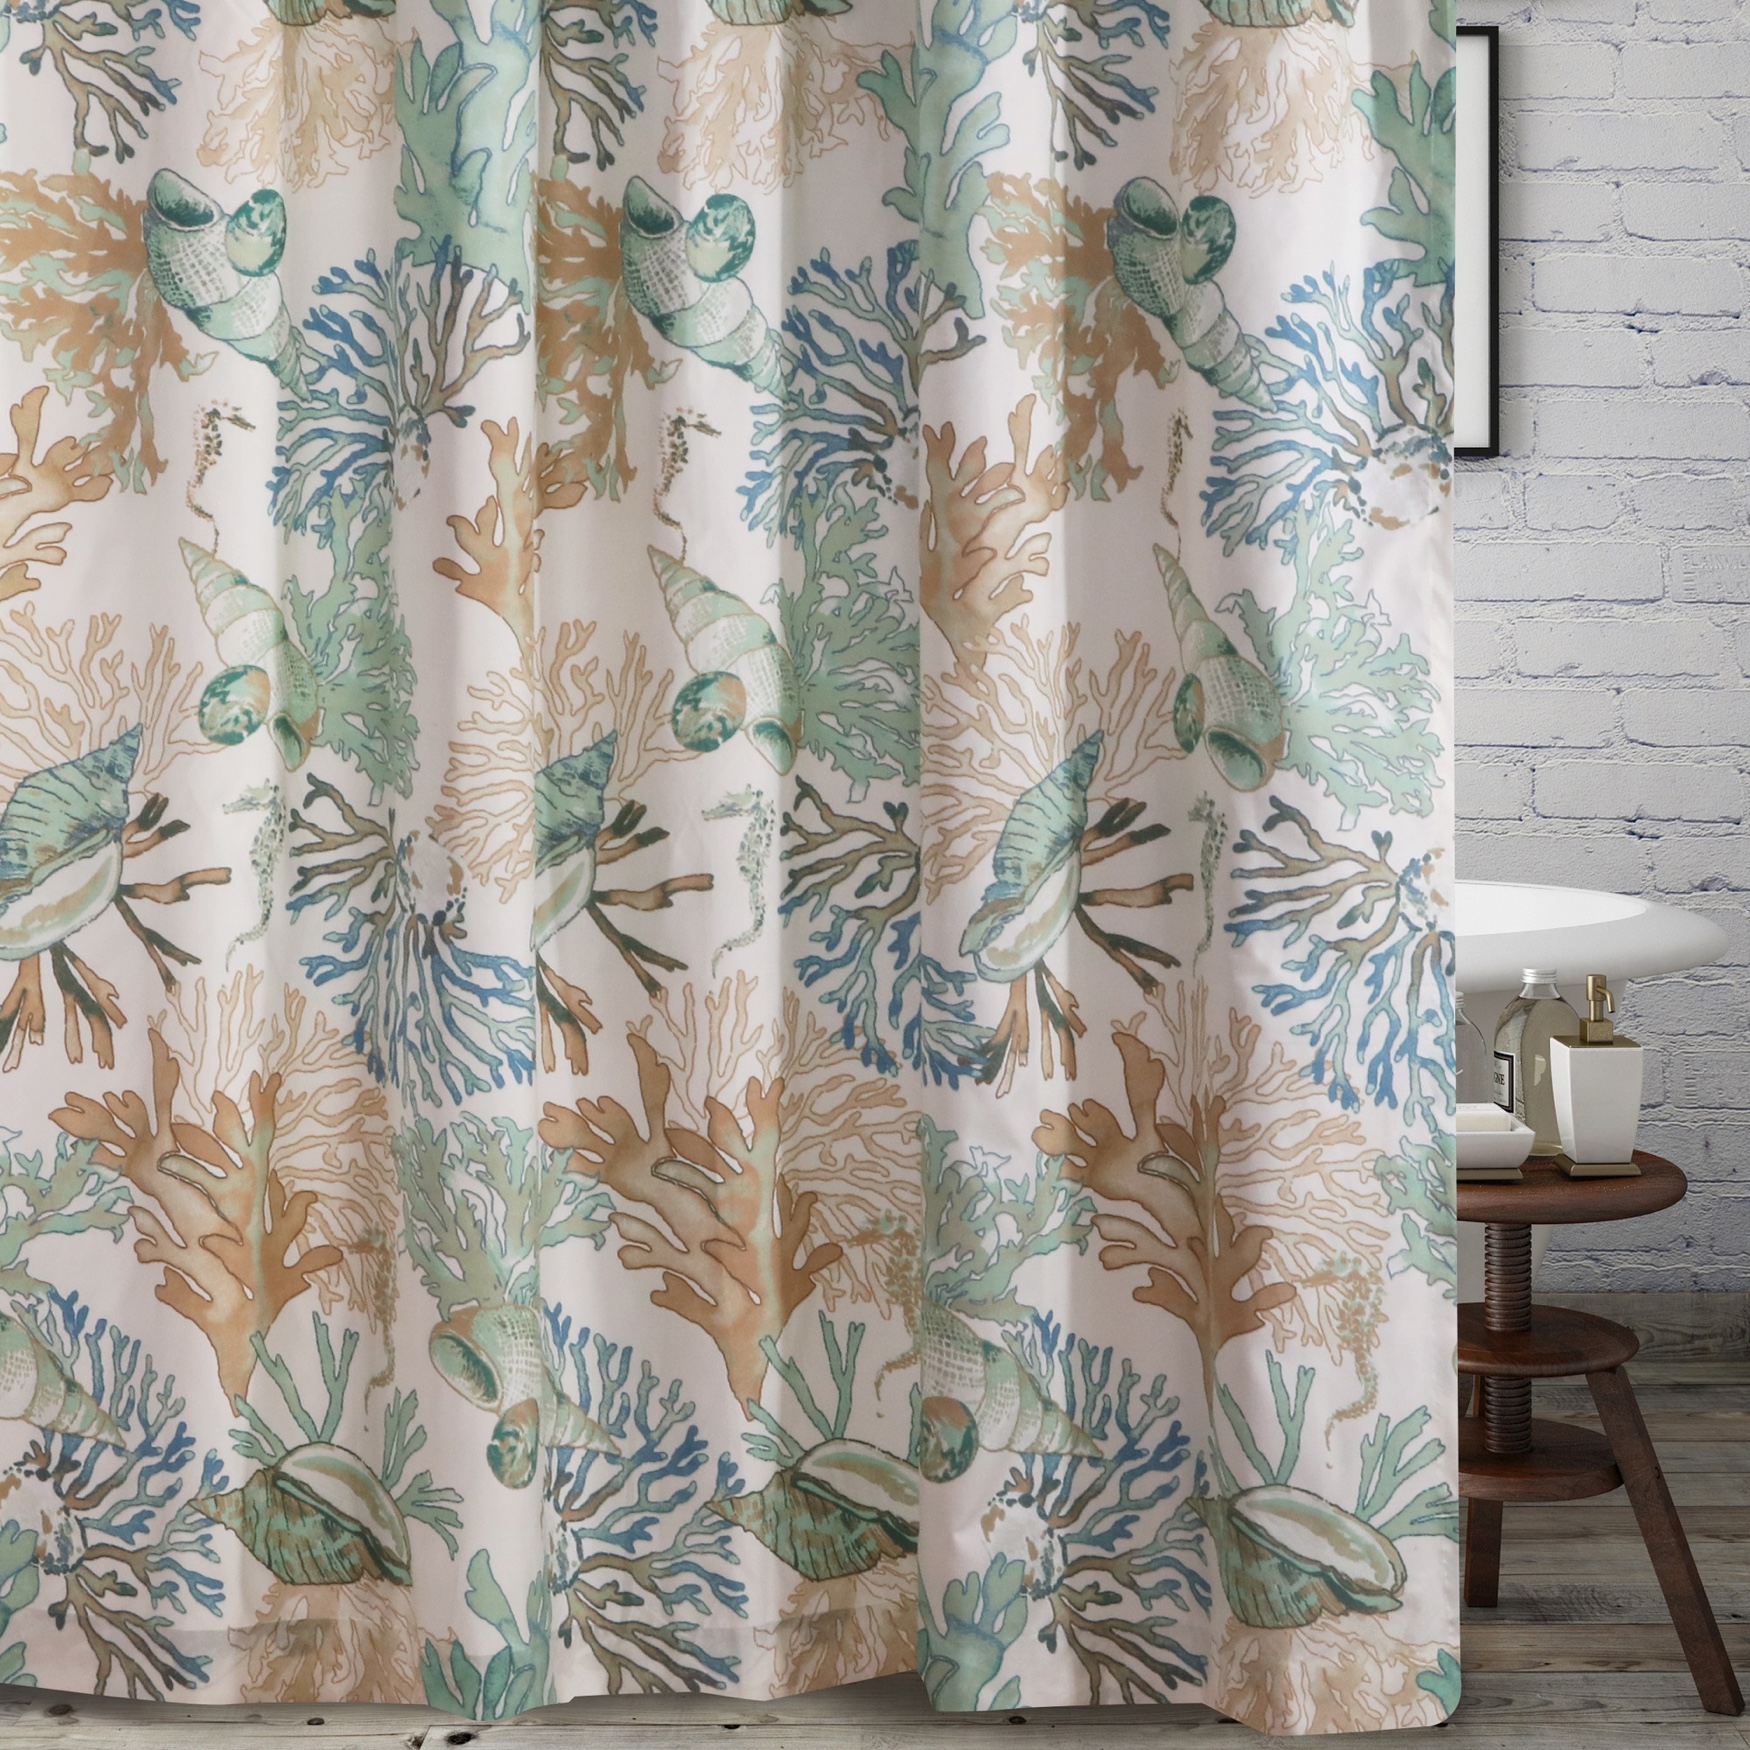 Barefoot Bungalow Atlantis Shower Curtain, JADE